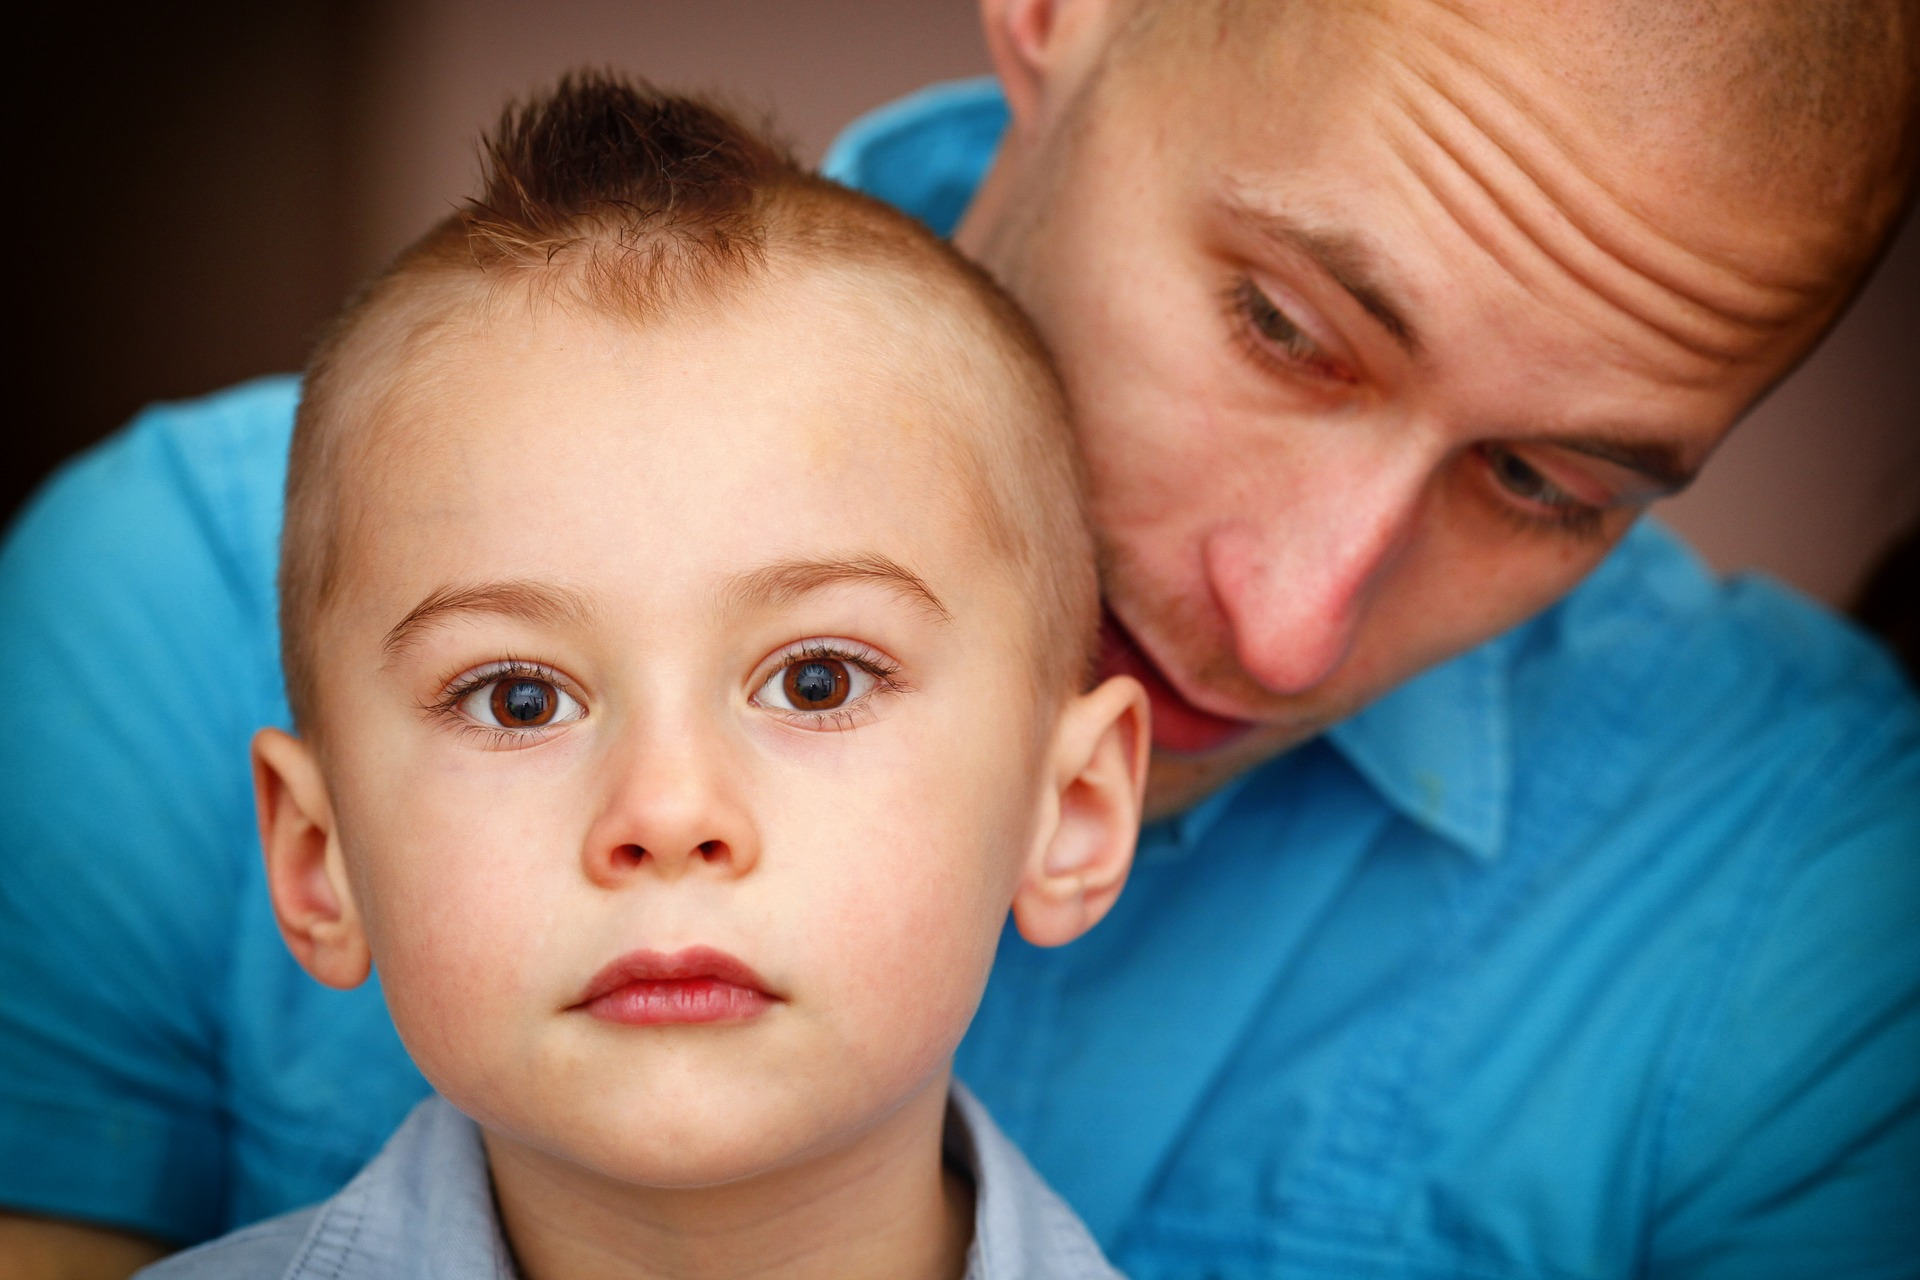 What Do We Really Know About The Impact Of Spanking Children?